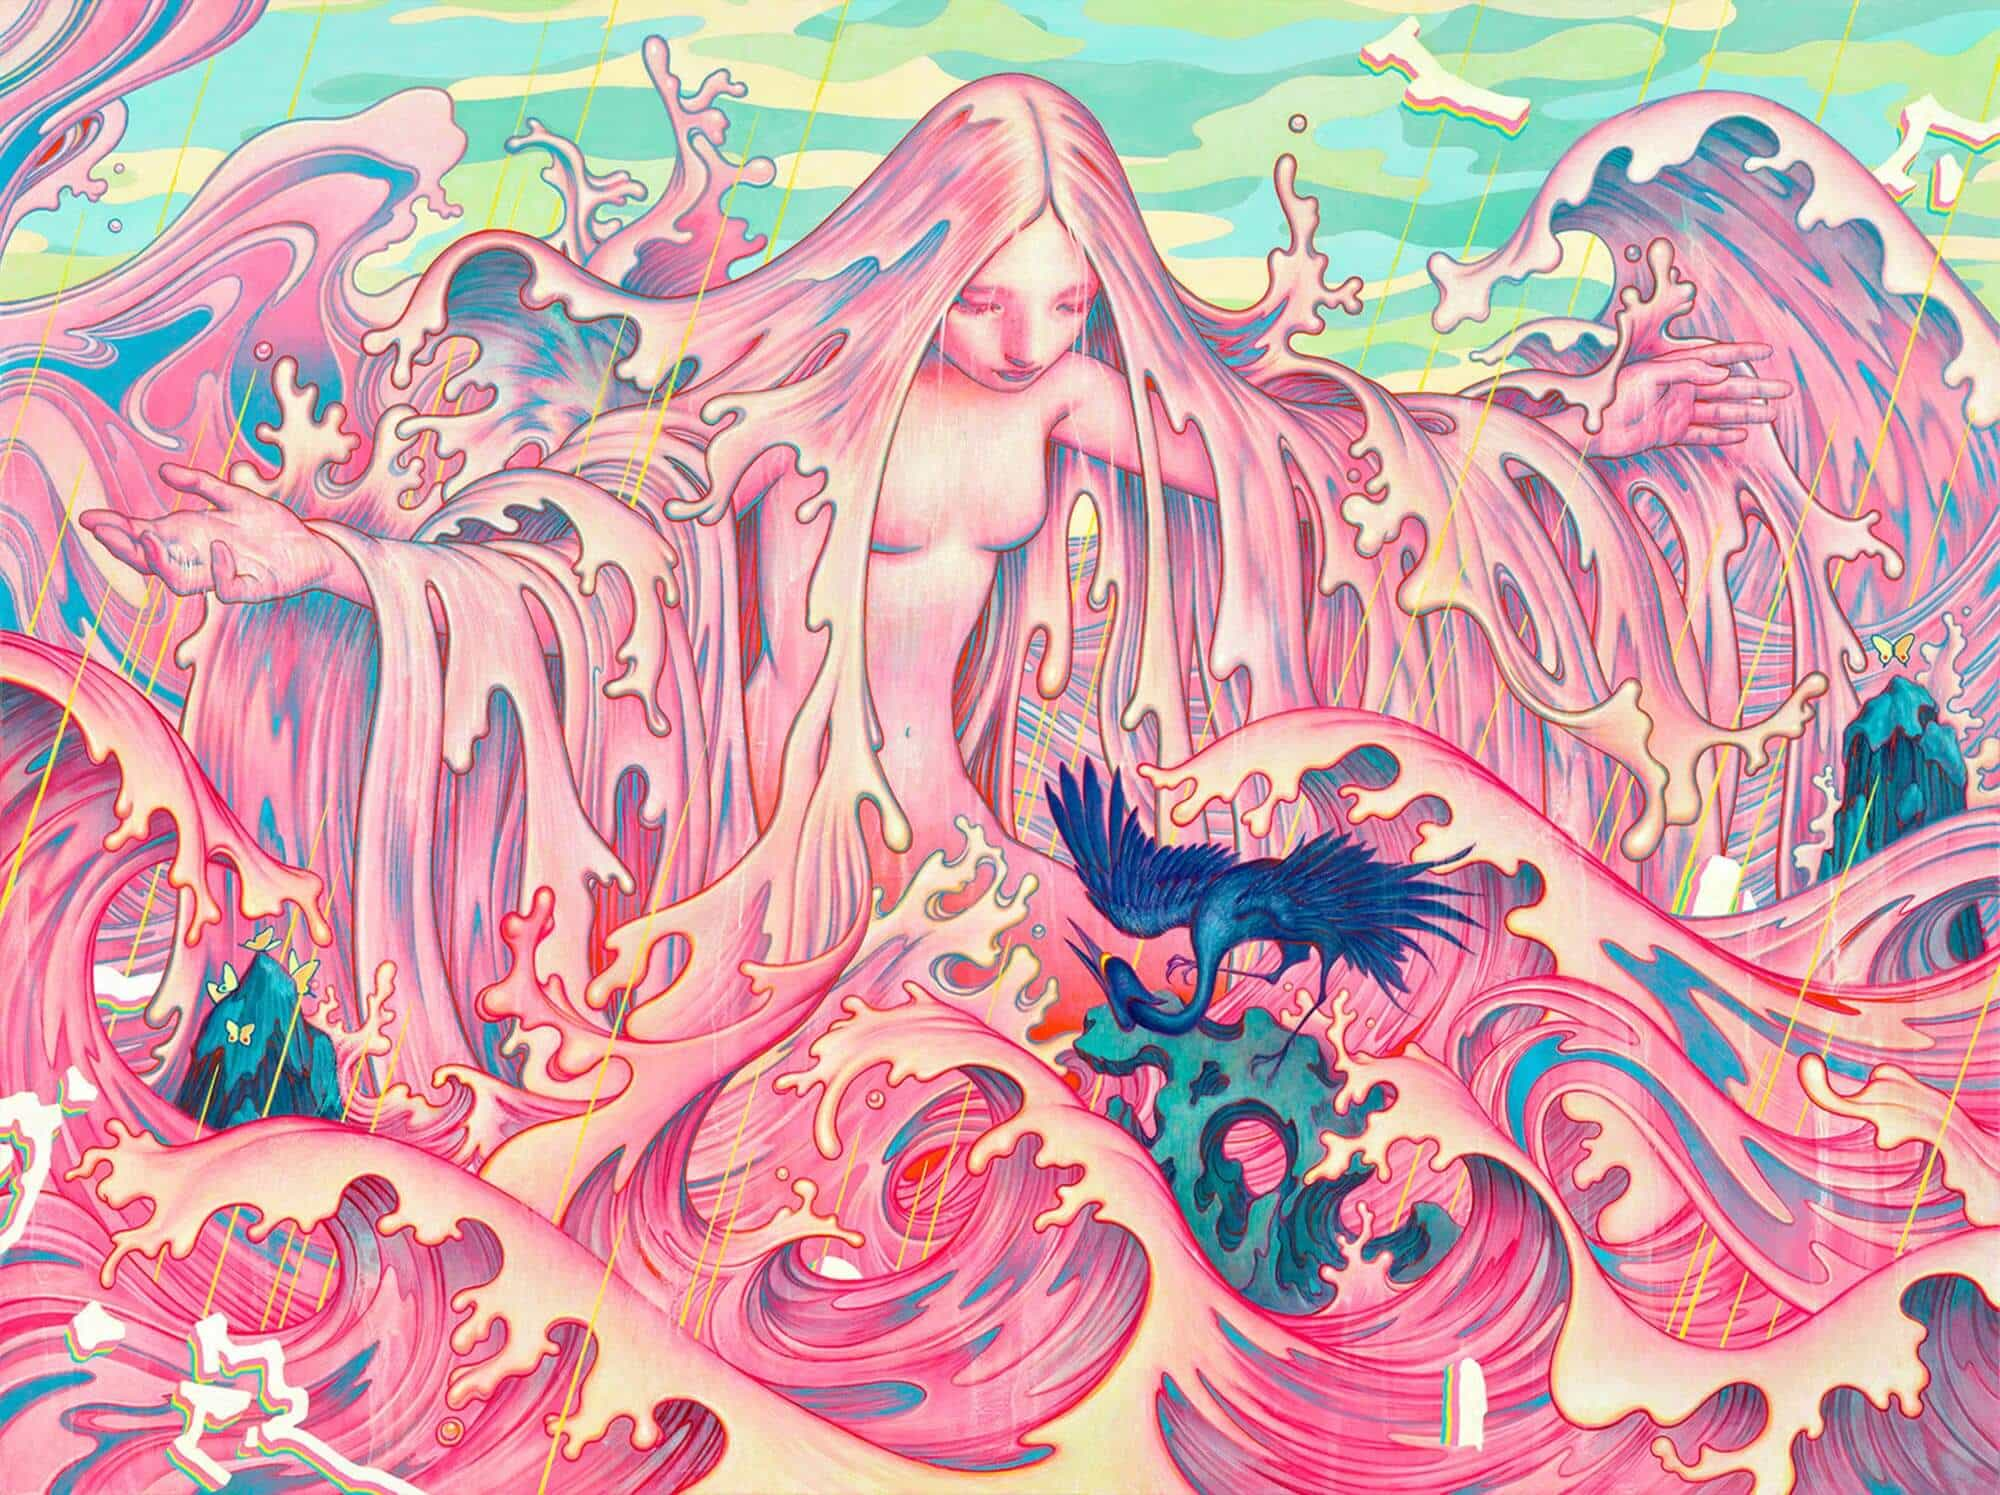 Mind-Melting Artwork by James Jean -paintings, illustrations